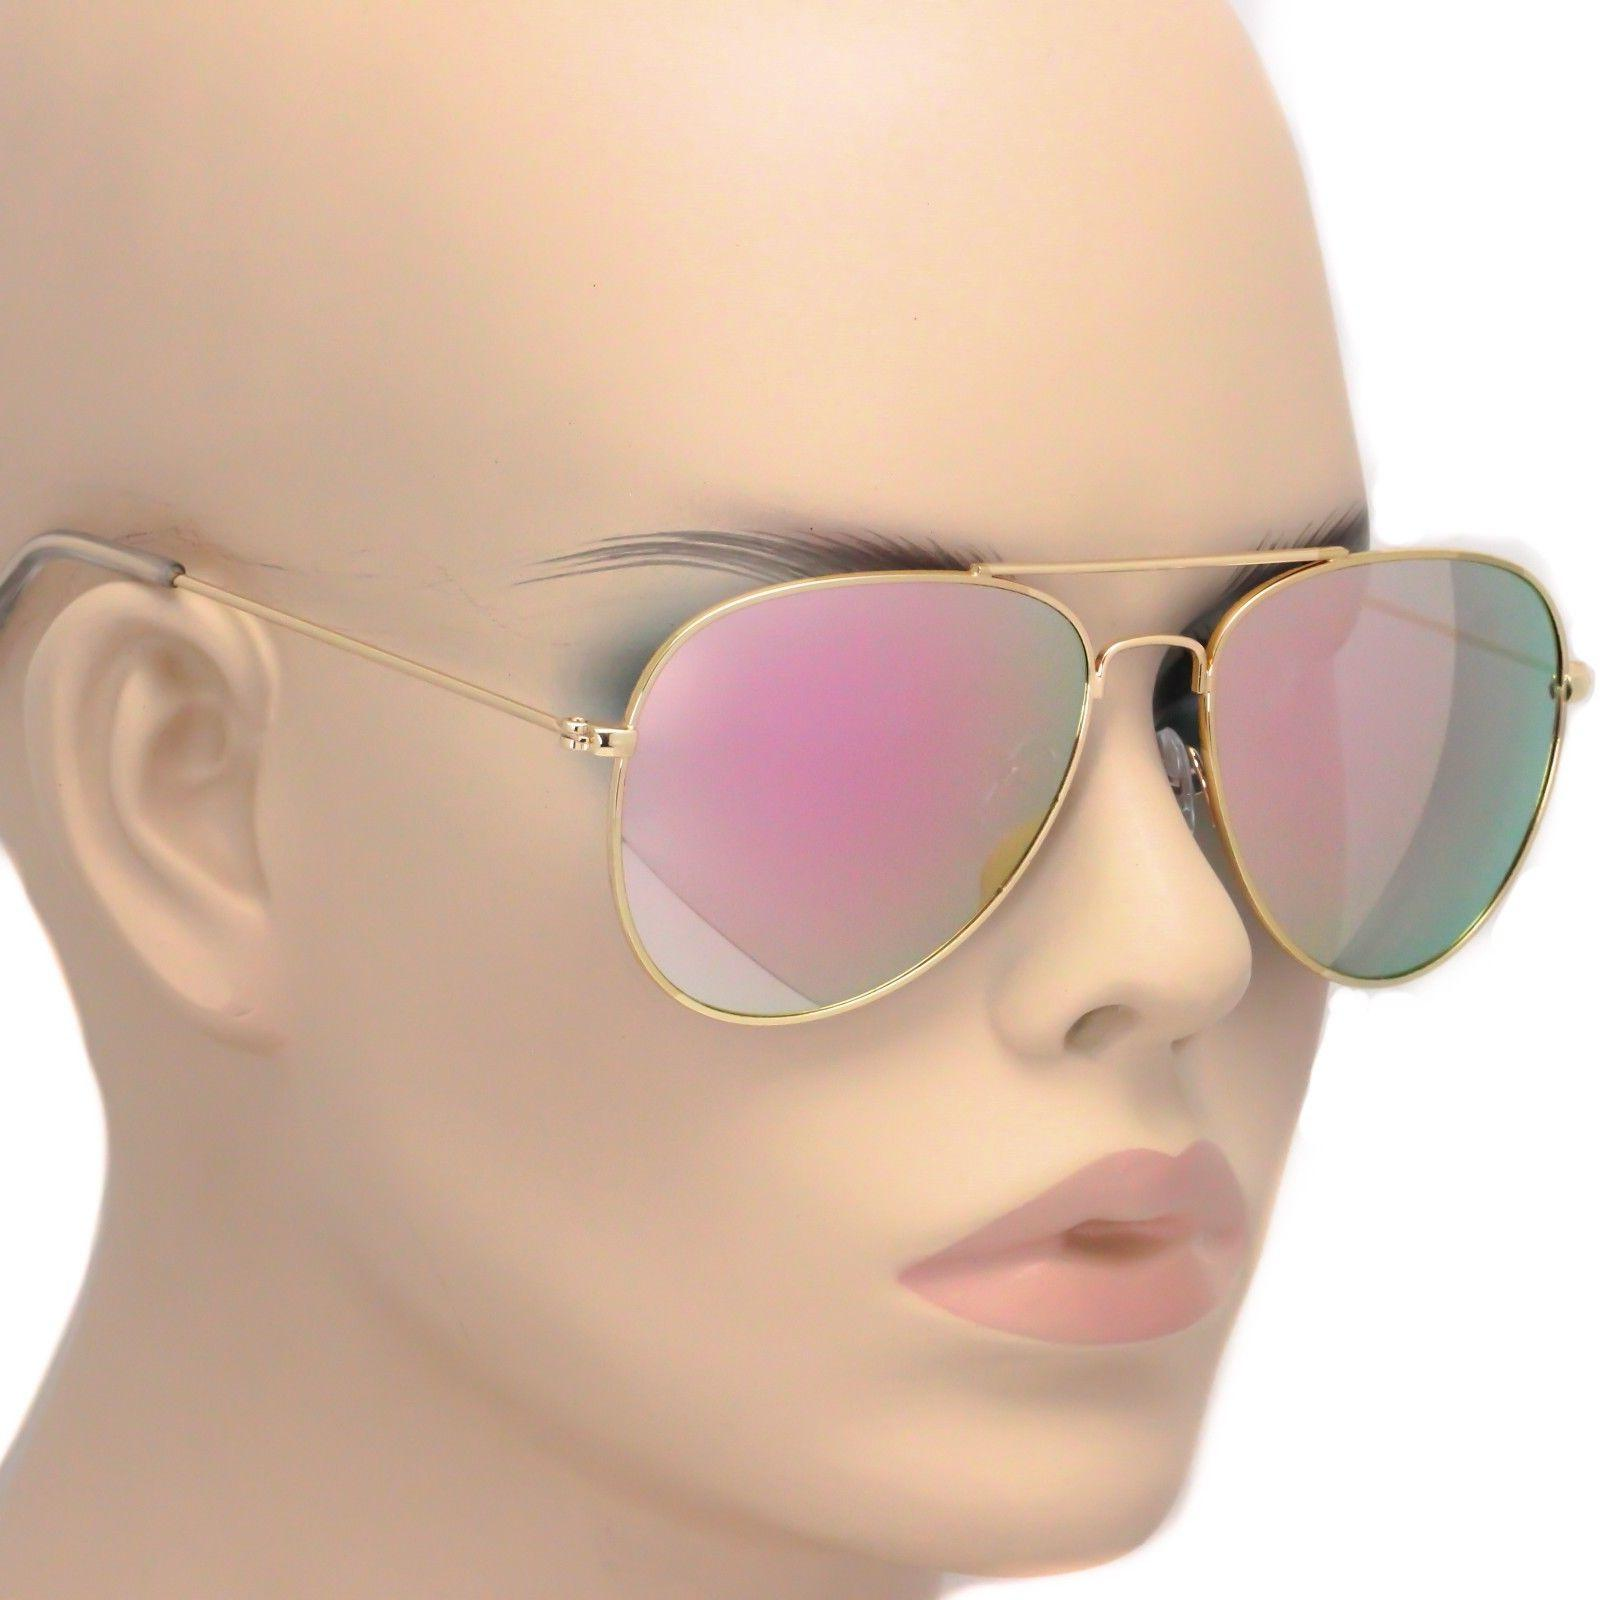 new rose gold aviator unisex sunglasses iridescent